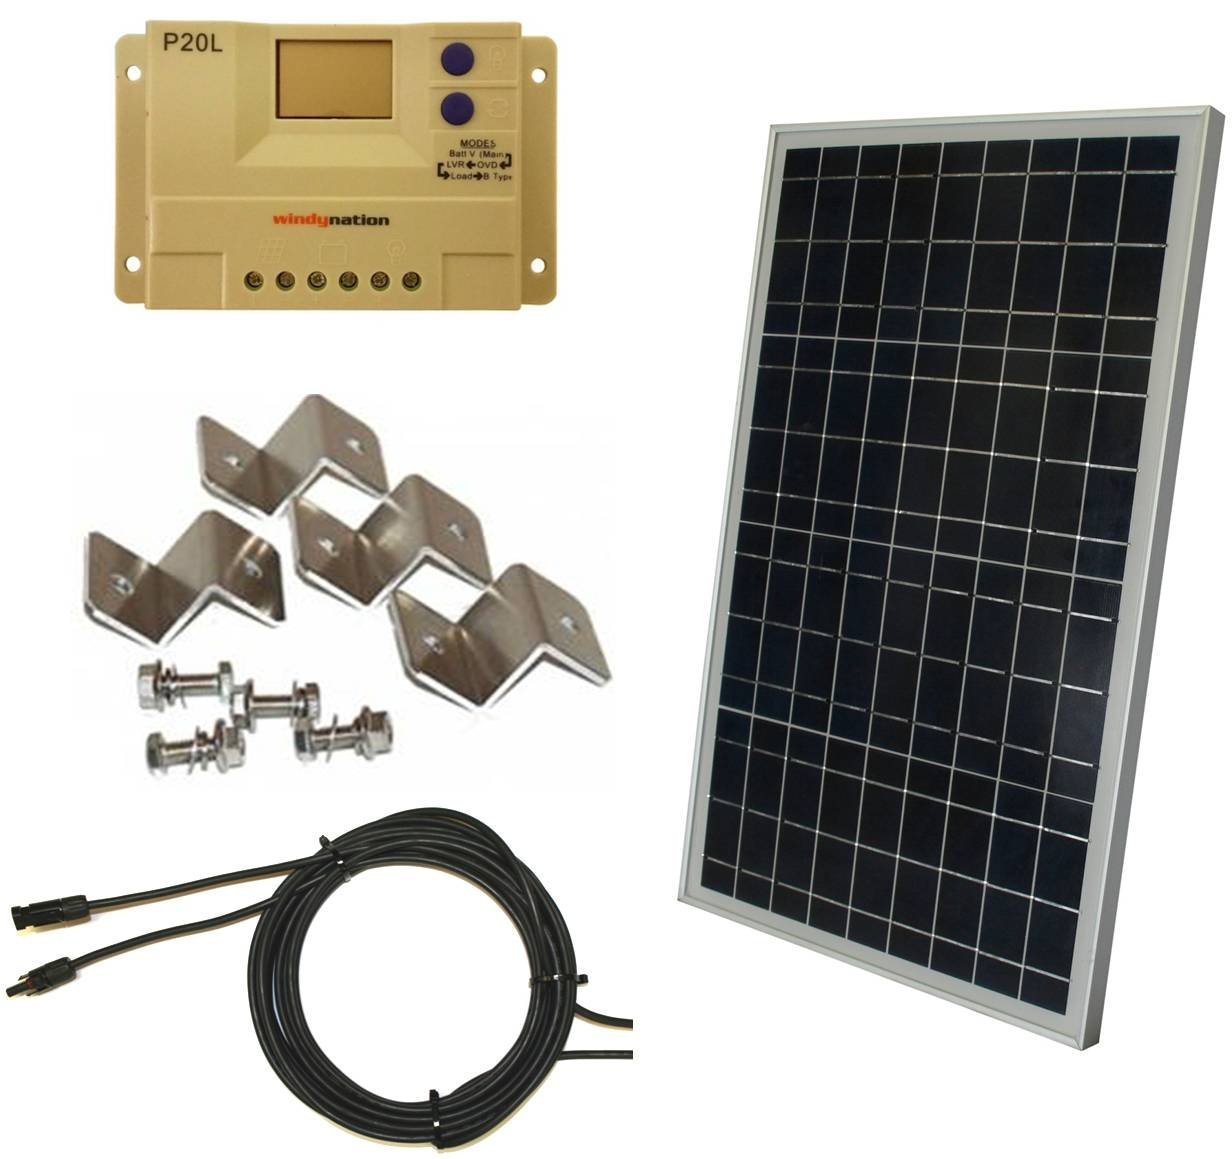 Amazon.com : Complete 30 Watt Solar Panel Kit: 30W Polycrystalline Solar  Panel + 20A Charge Controller + MC4 Connectors + Mounting Z brackets for  12V Off ...